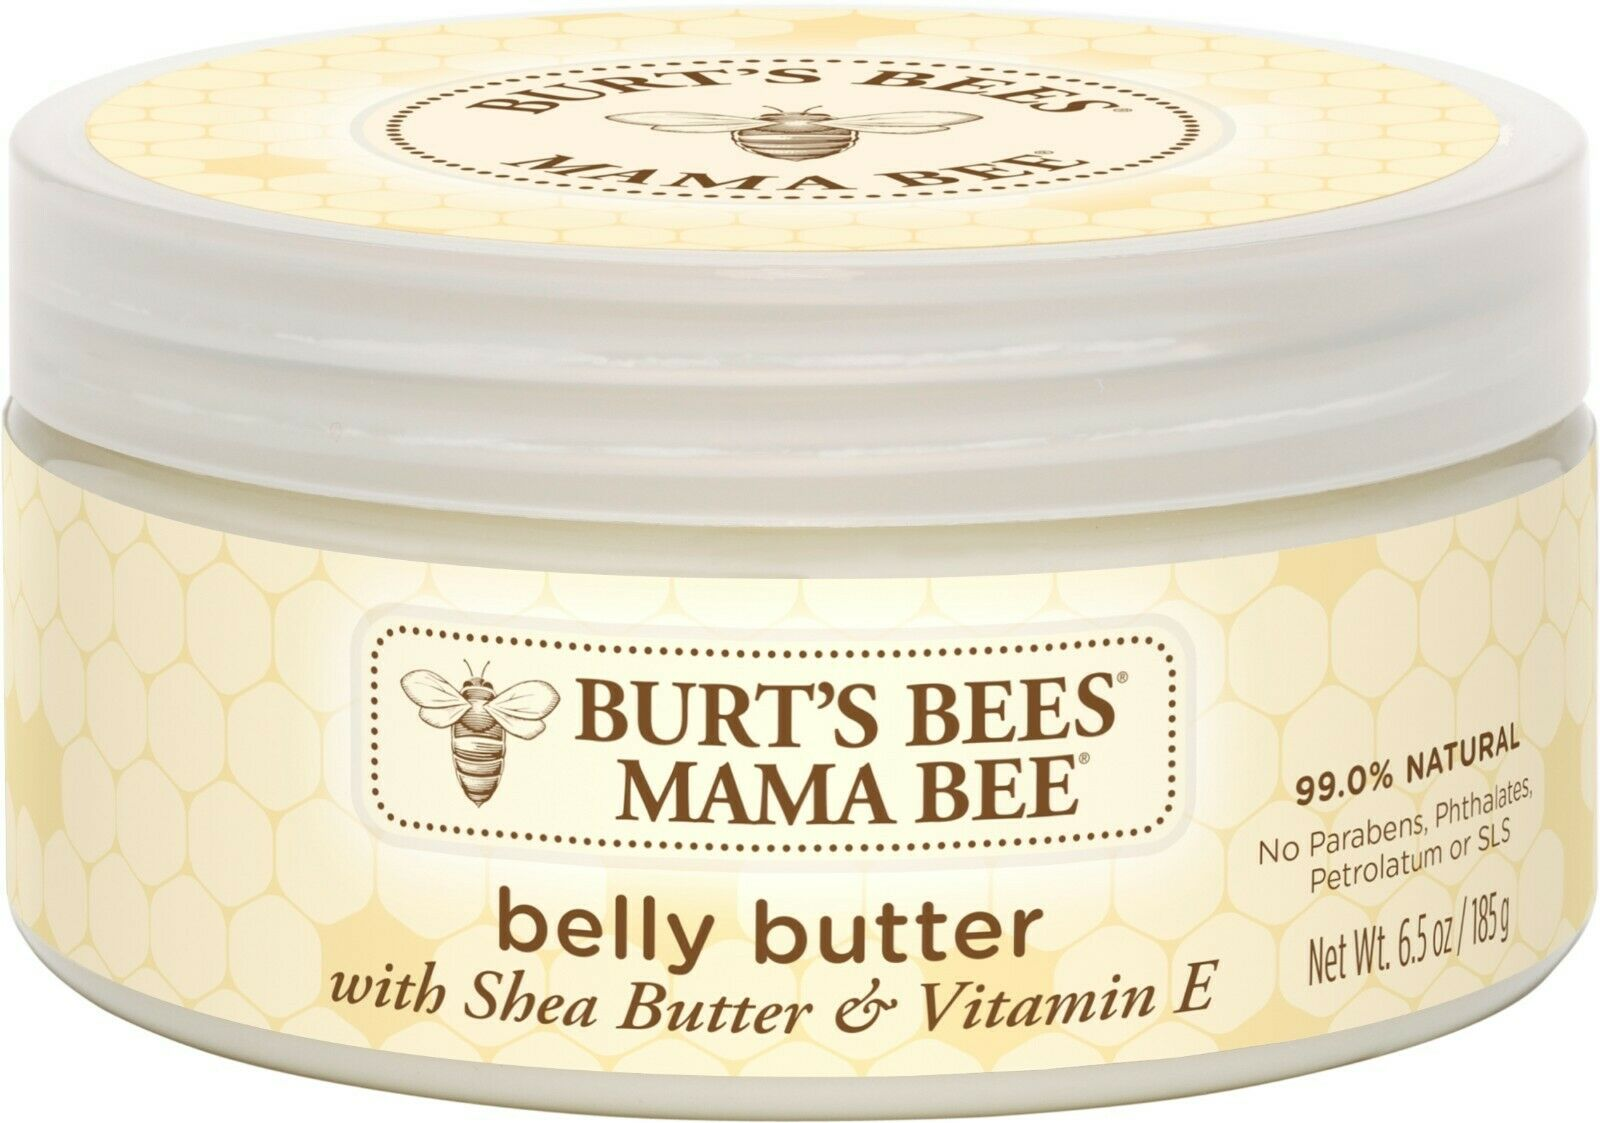 Burt's Bees Mama Bee Belly Butter, Fragrance Free Lotion, 6.